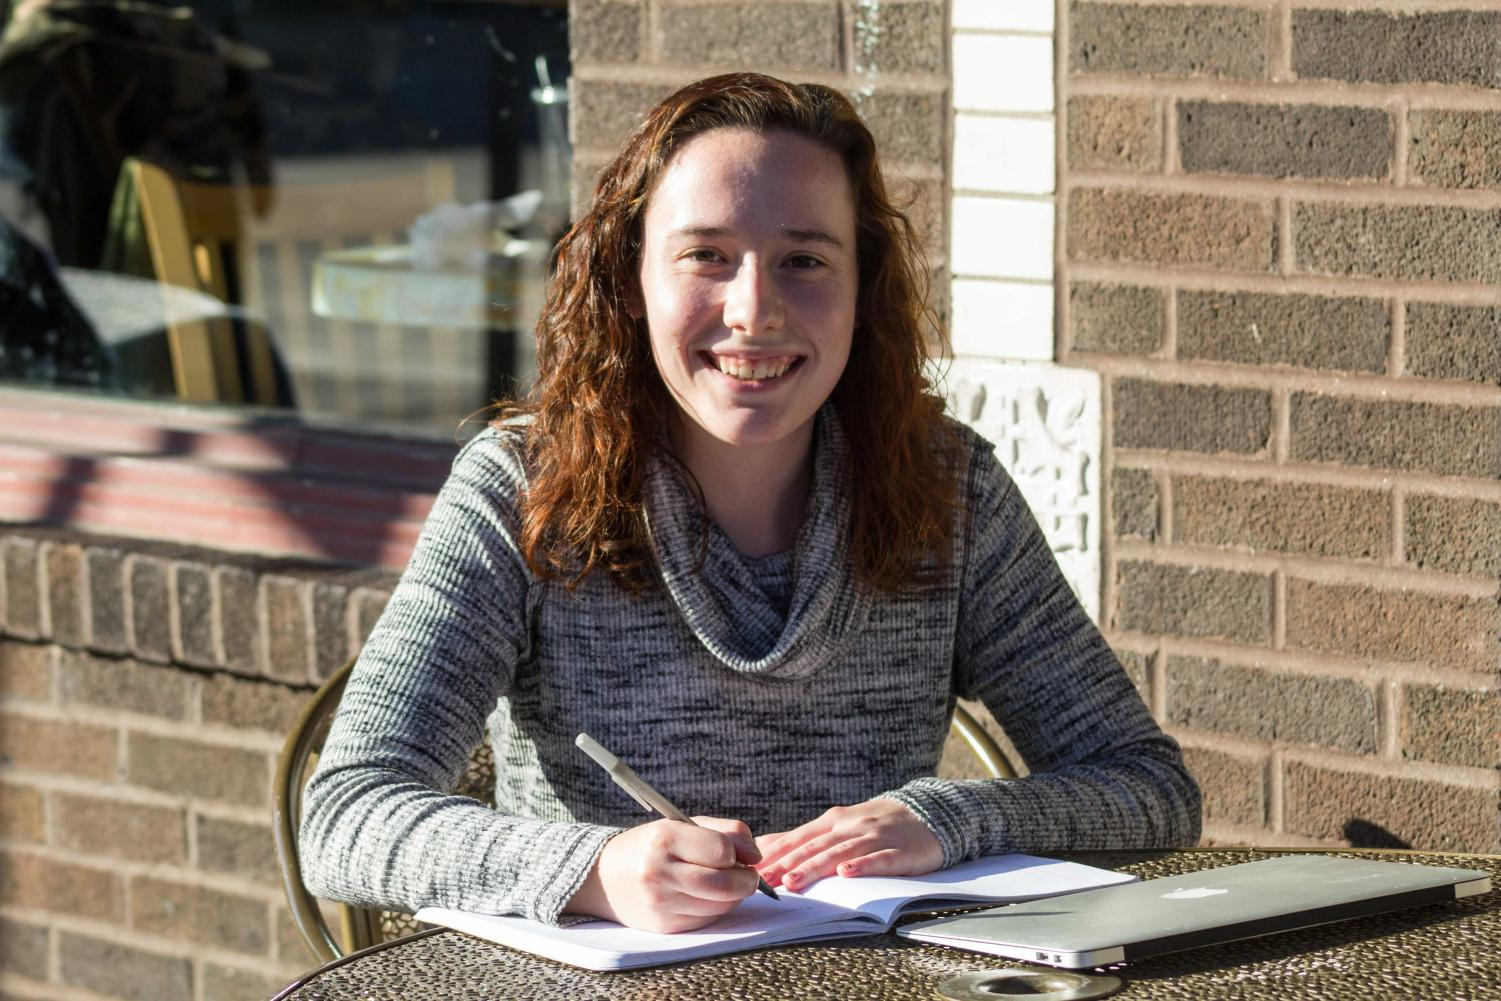 Co-editor in chief of Re:Search, a literary criticism journal, Hannah Downing, does most of her work at Espresso Royal on Sixth and Daniel. The journal showcases submitted literary work from students all across campus.